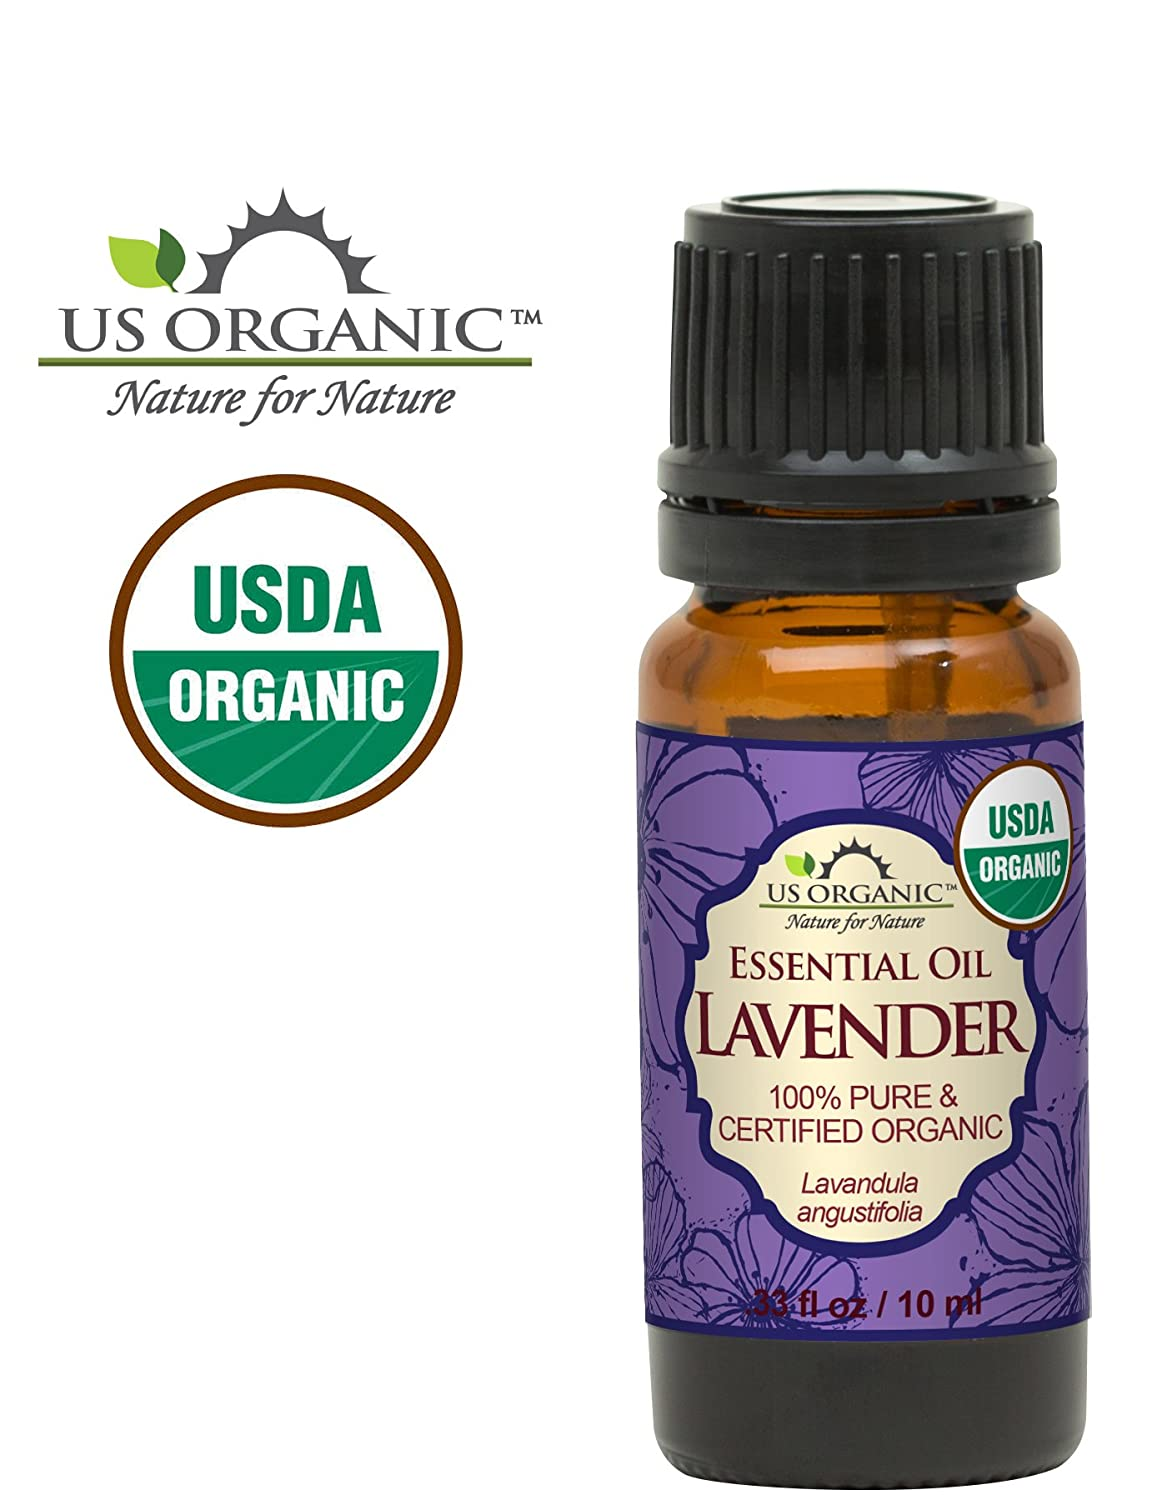 US Organic 100% Pure Lavender Essential Oil (Bulgarian) - USDA Certified Organic - 10 ml